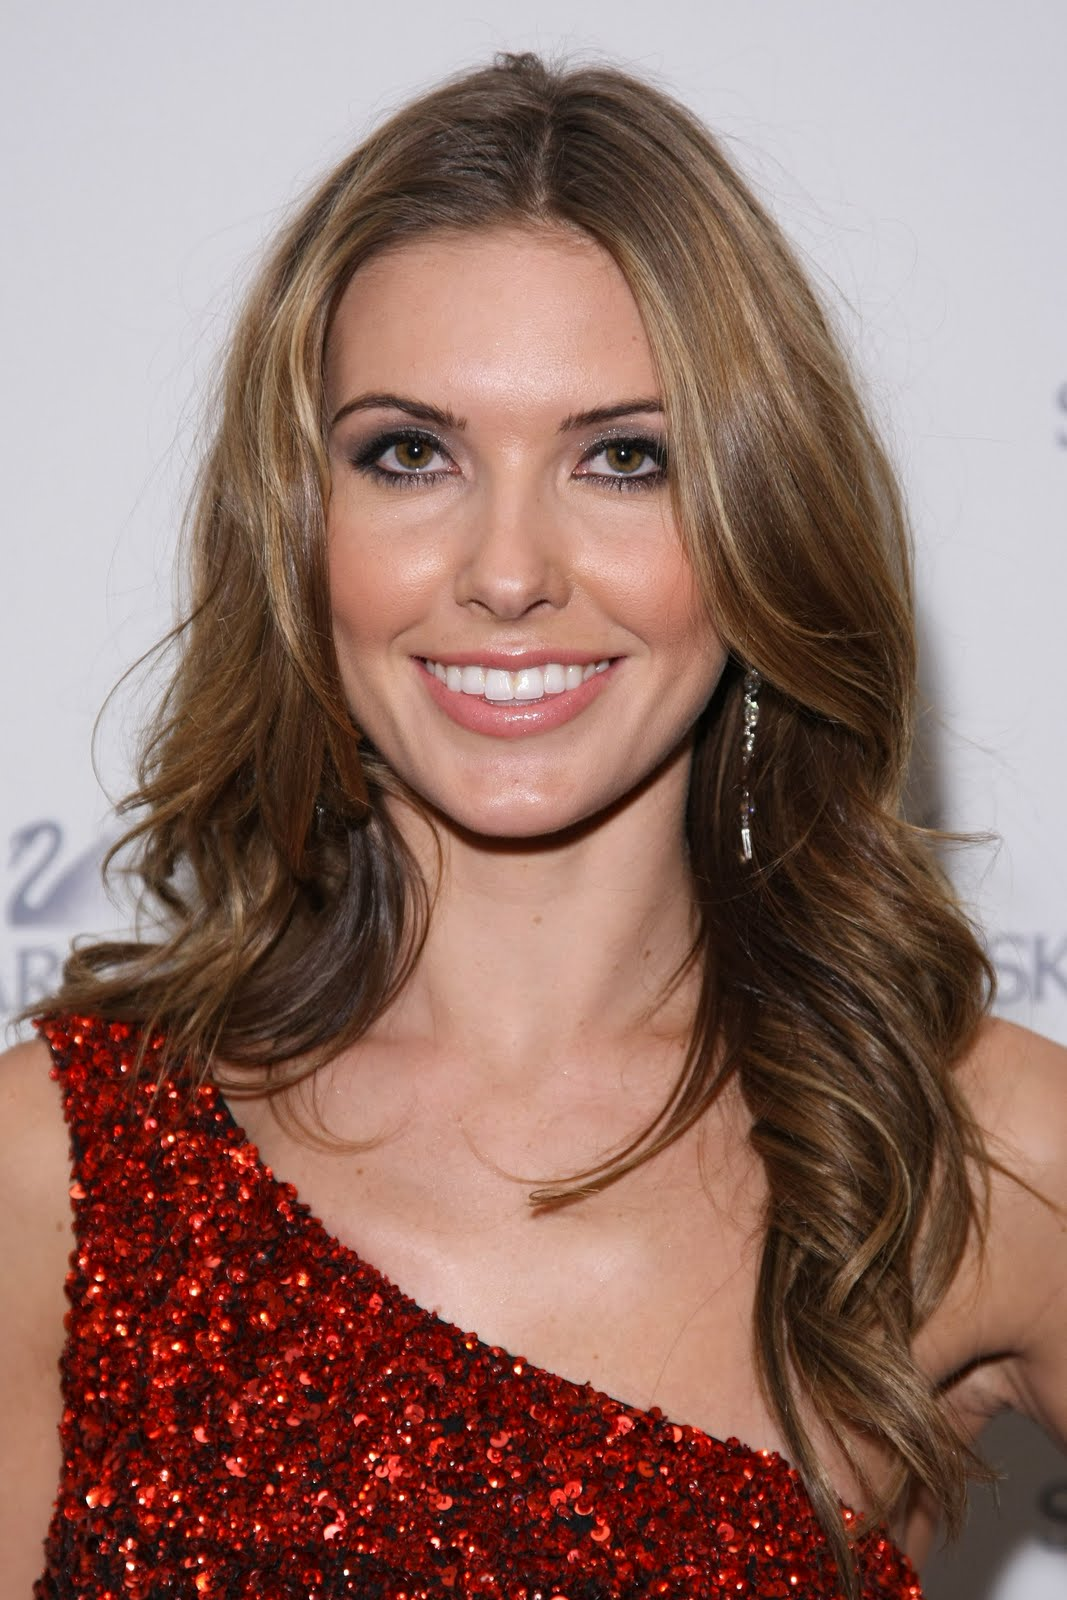 Audrina Patridge At The Heart Truth Fashion Show Mbfw 2011